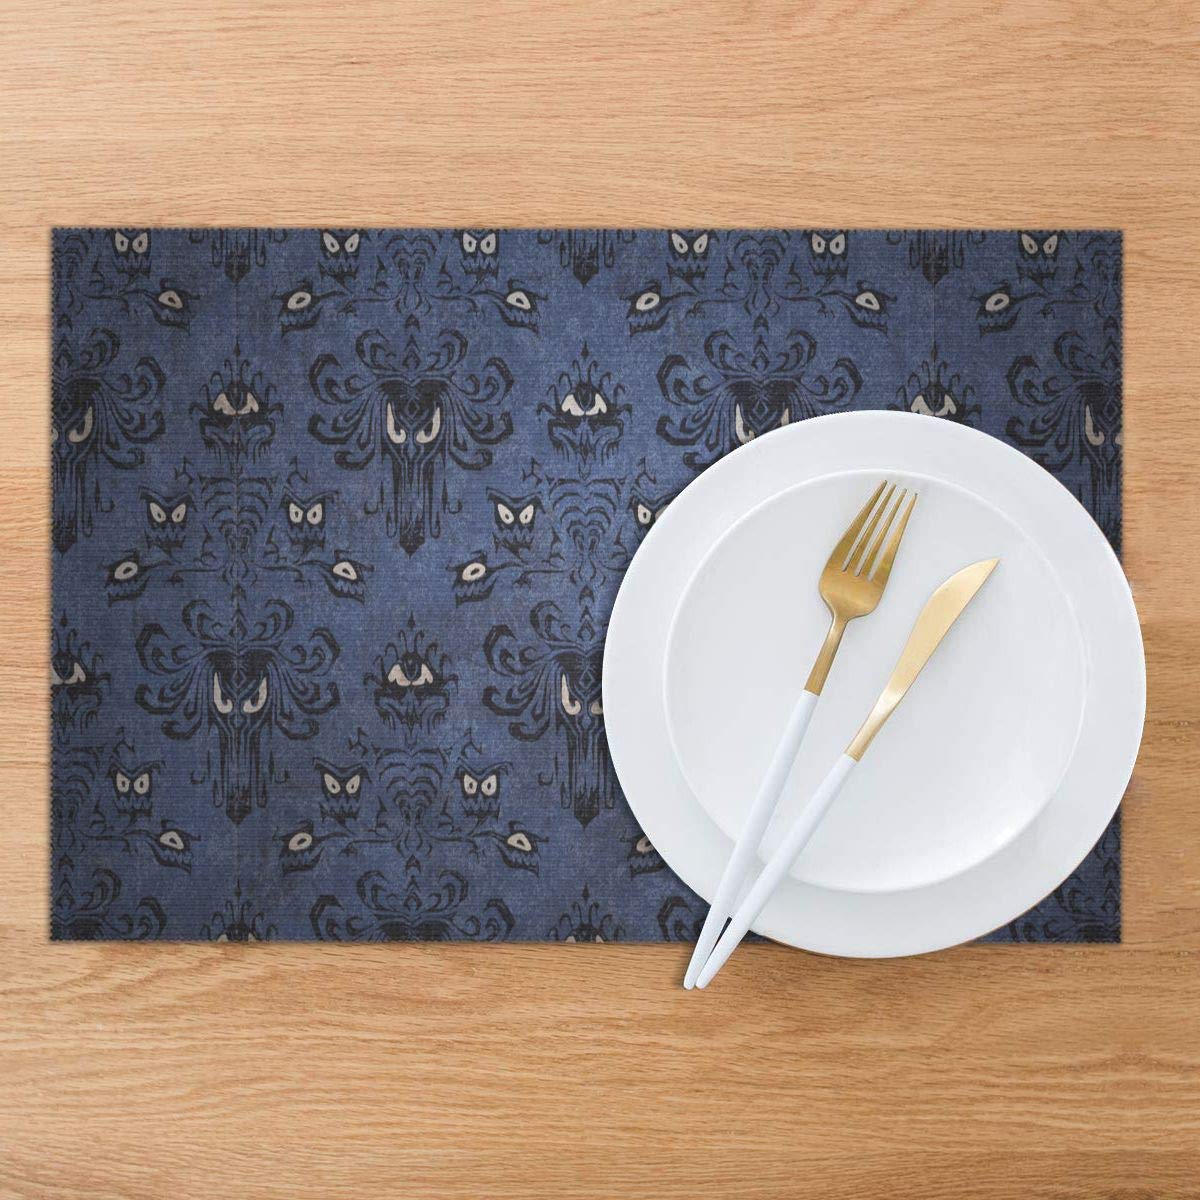 Snack Drink Non-Slip Anti-scalding Placemat, LLIJKOR Haunted Mansion Washable Fabric Placemats 12 X 18 Set of 6,Personality Design 3D Printed Table Mat